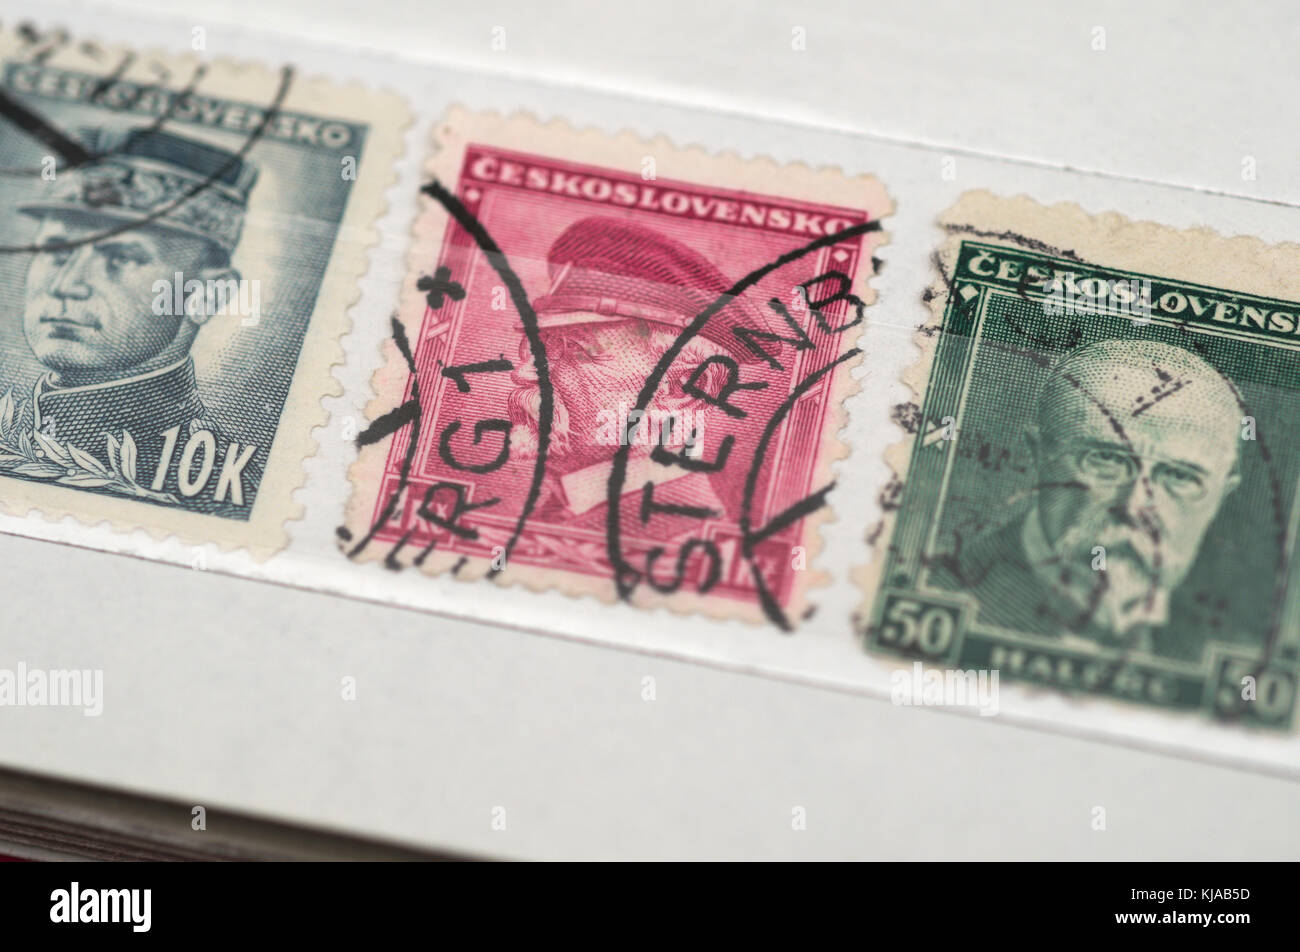 old postage stamps, Czechoslovakia - Stock Image